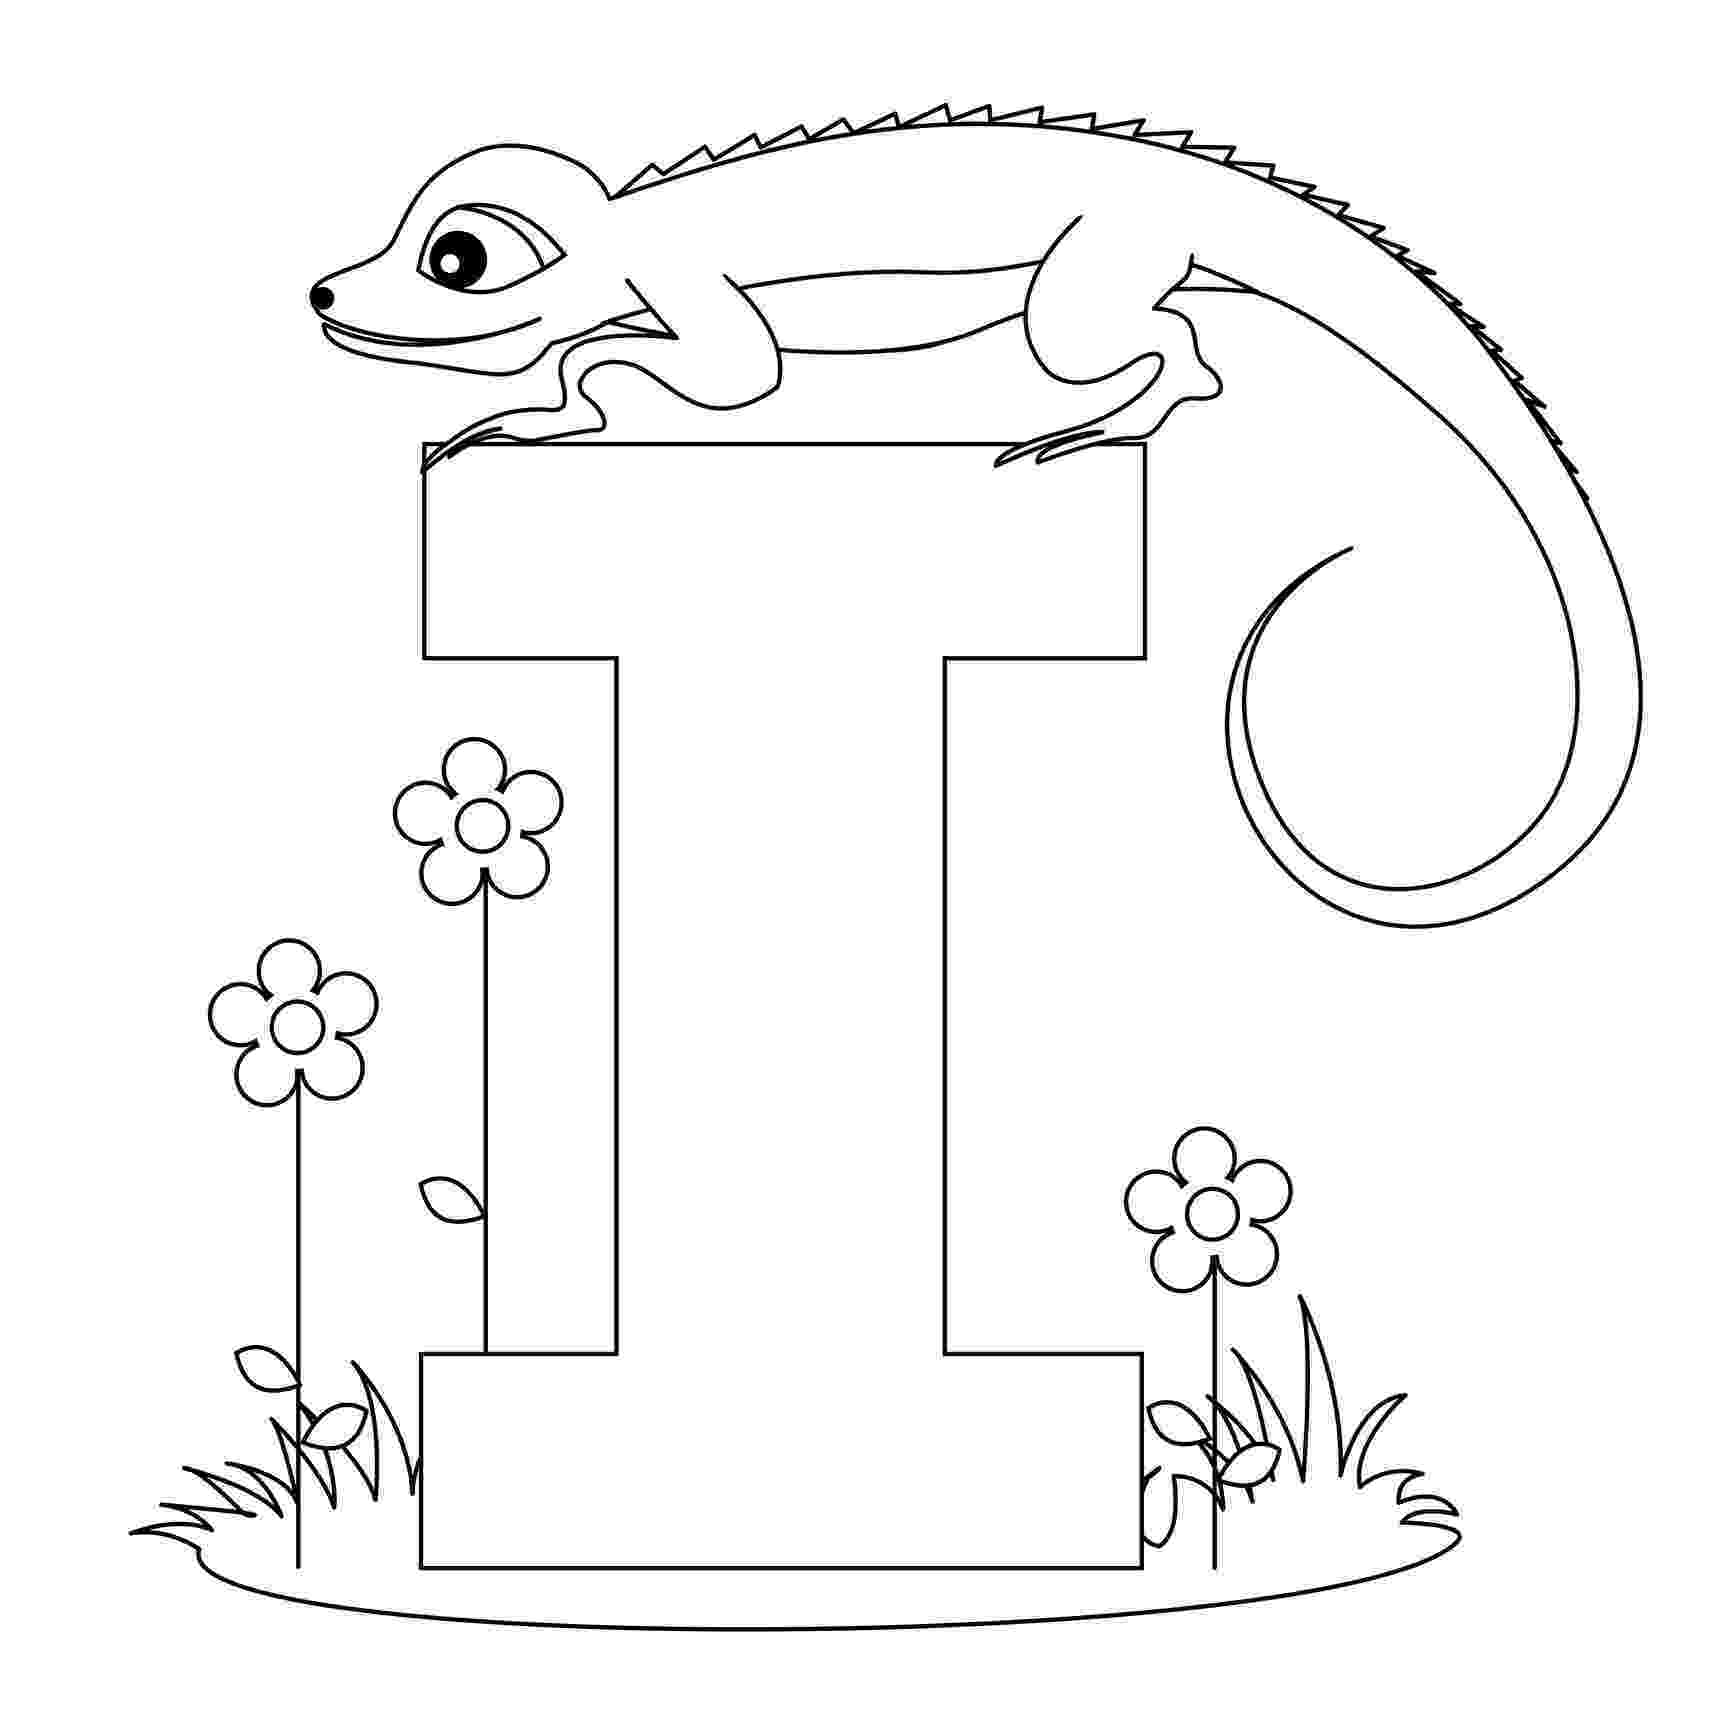 free alphabet coloring pages free printable alphabet coloring pages for kids best pages alphabet free coloring 1 1